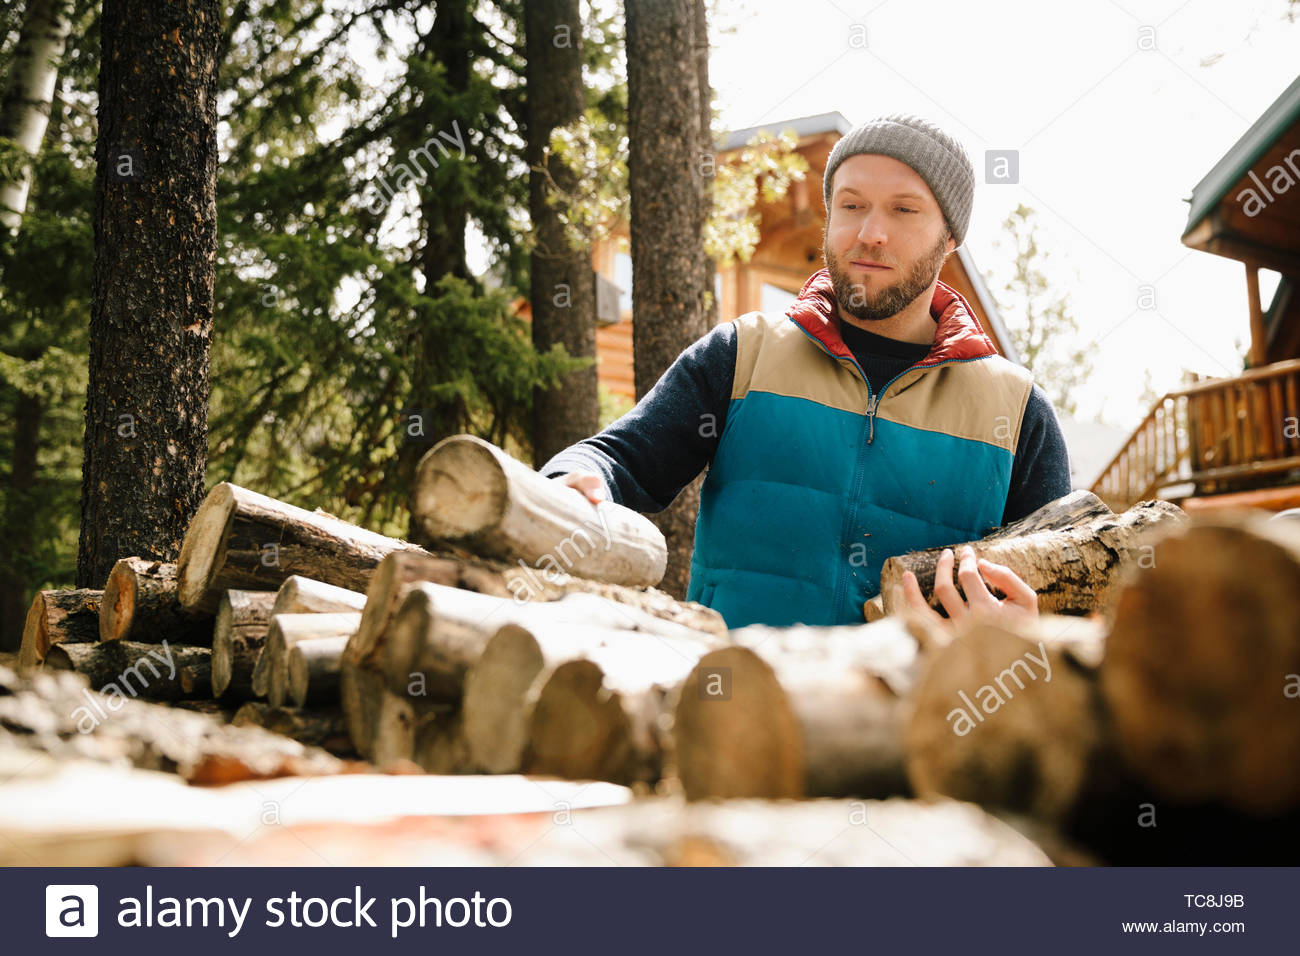 Man stacking firewood outside cabin - Stock Image